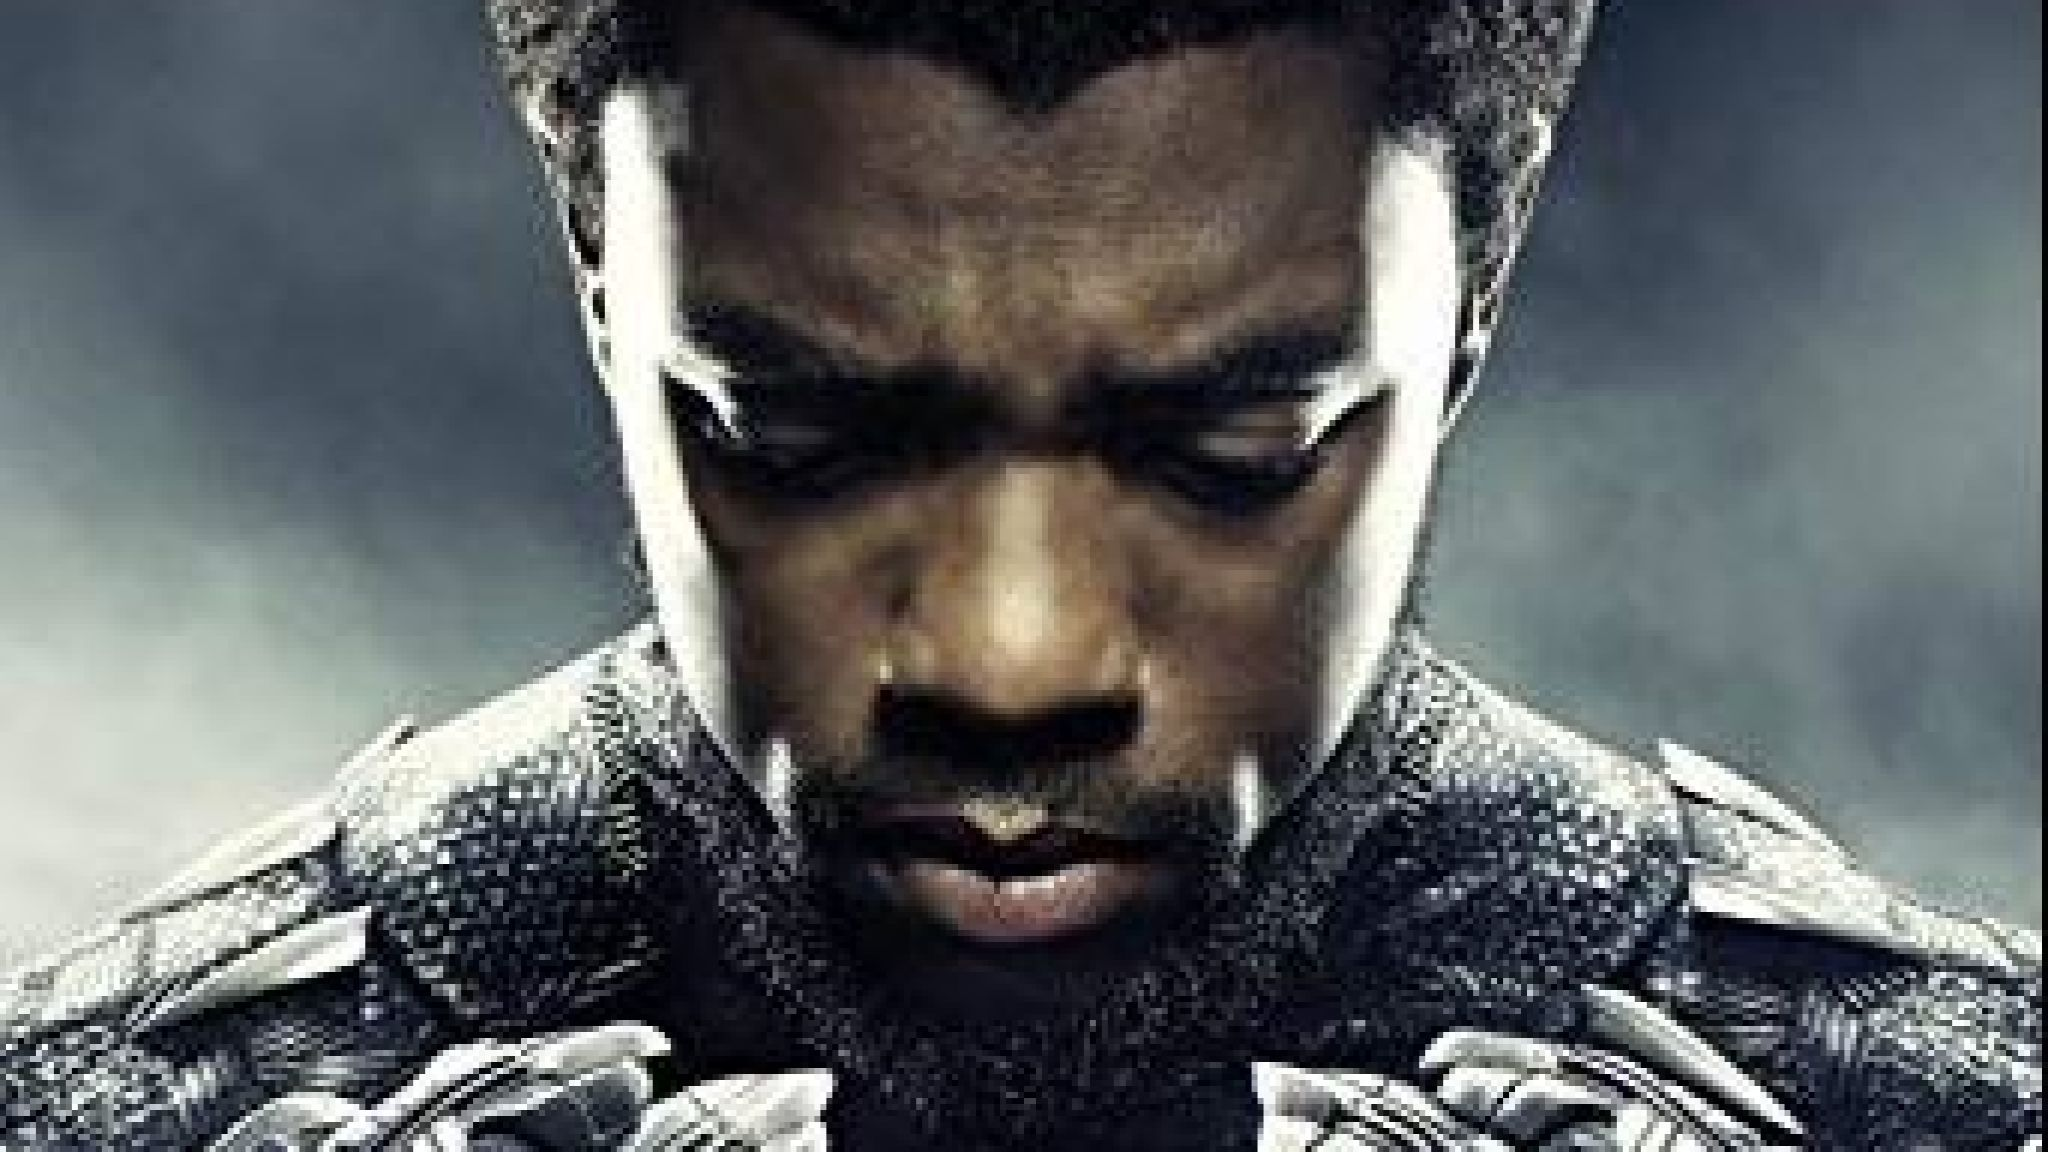 Black Panther lives in the fictional country Wakanda